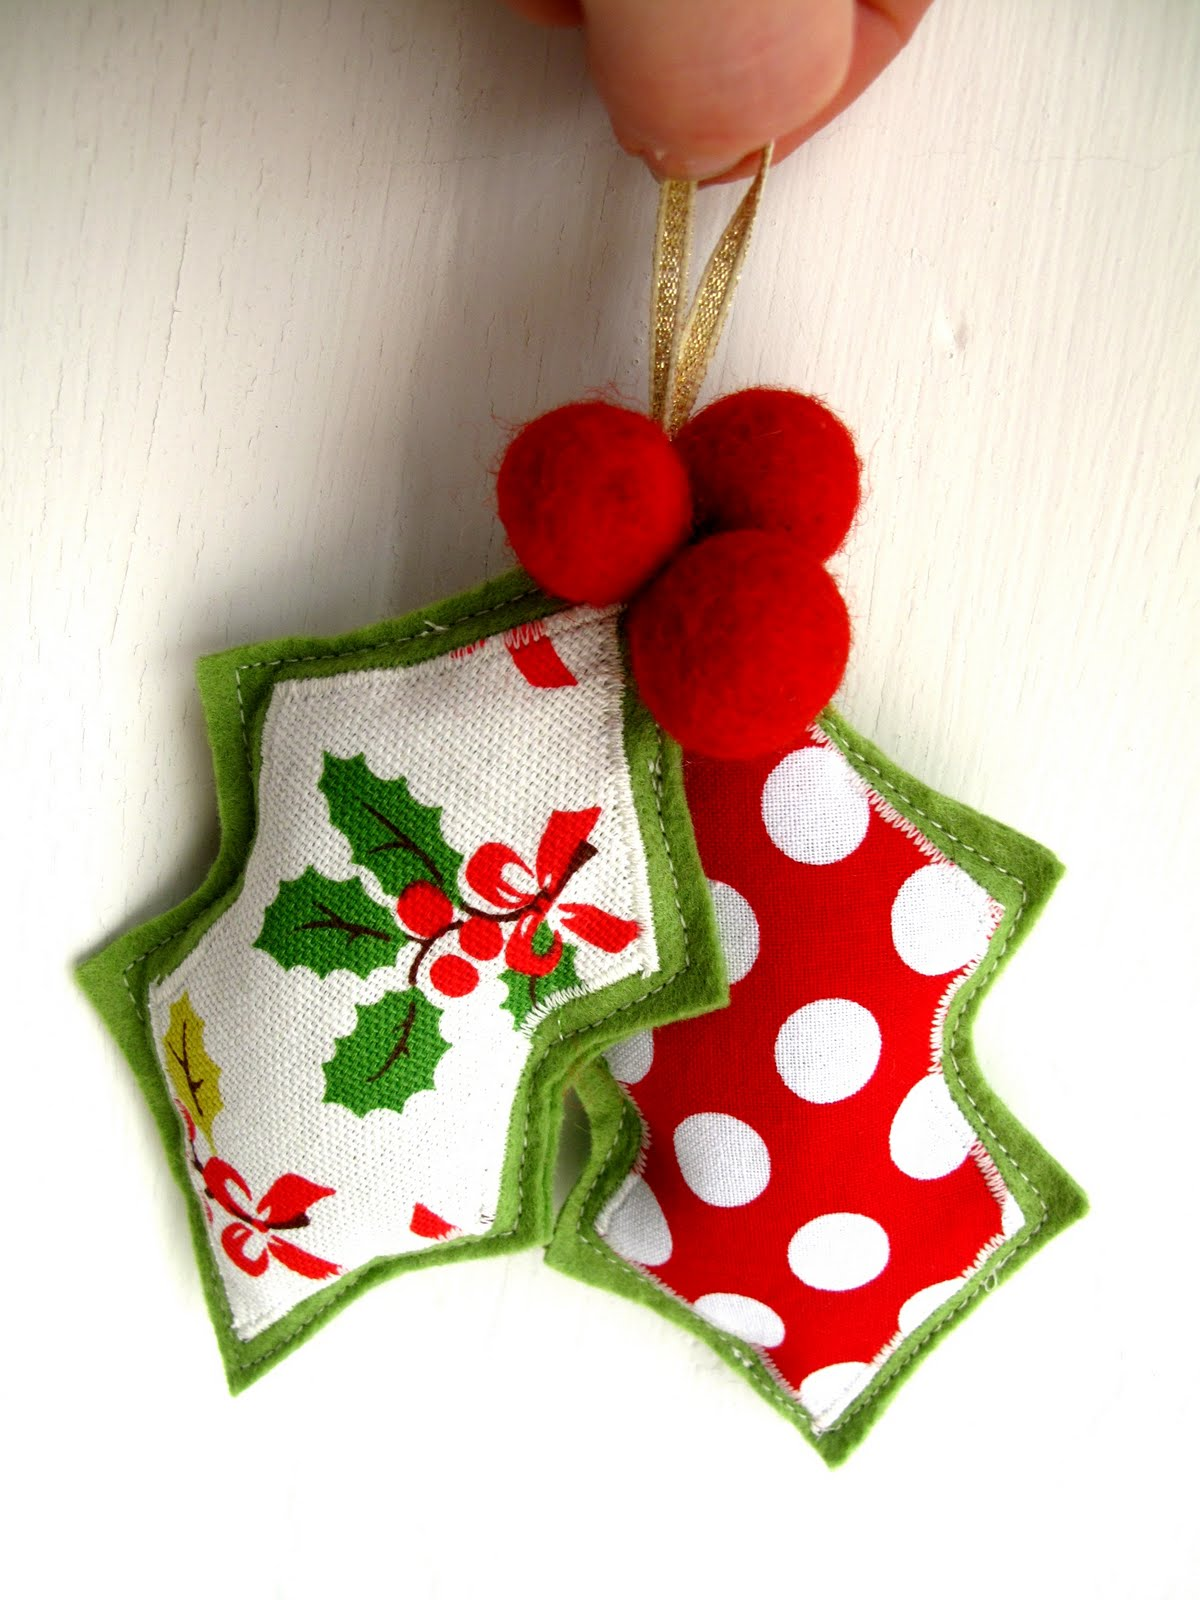 Homemade Christmas Decorations With Holly : Bugs and fishes by lupin guest post felt holly